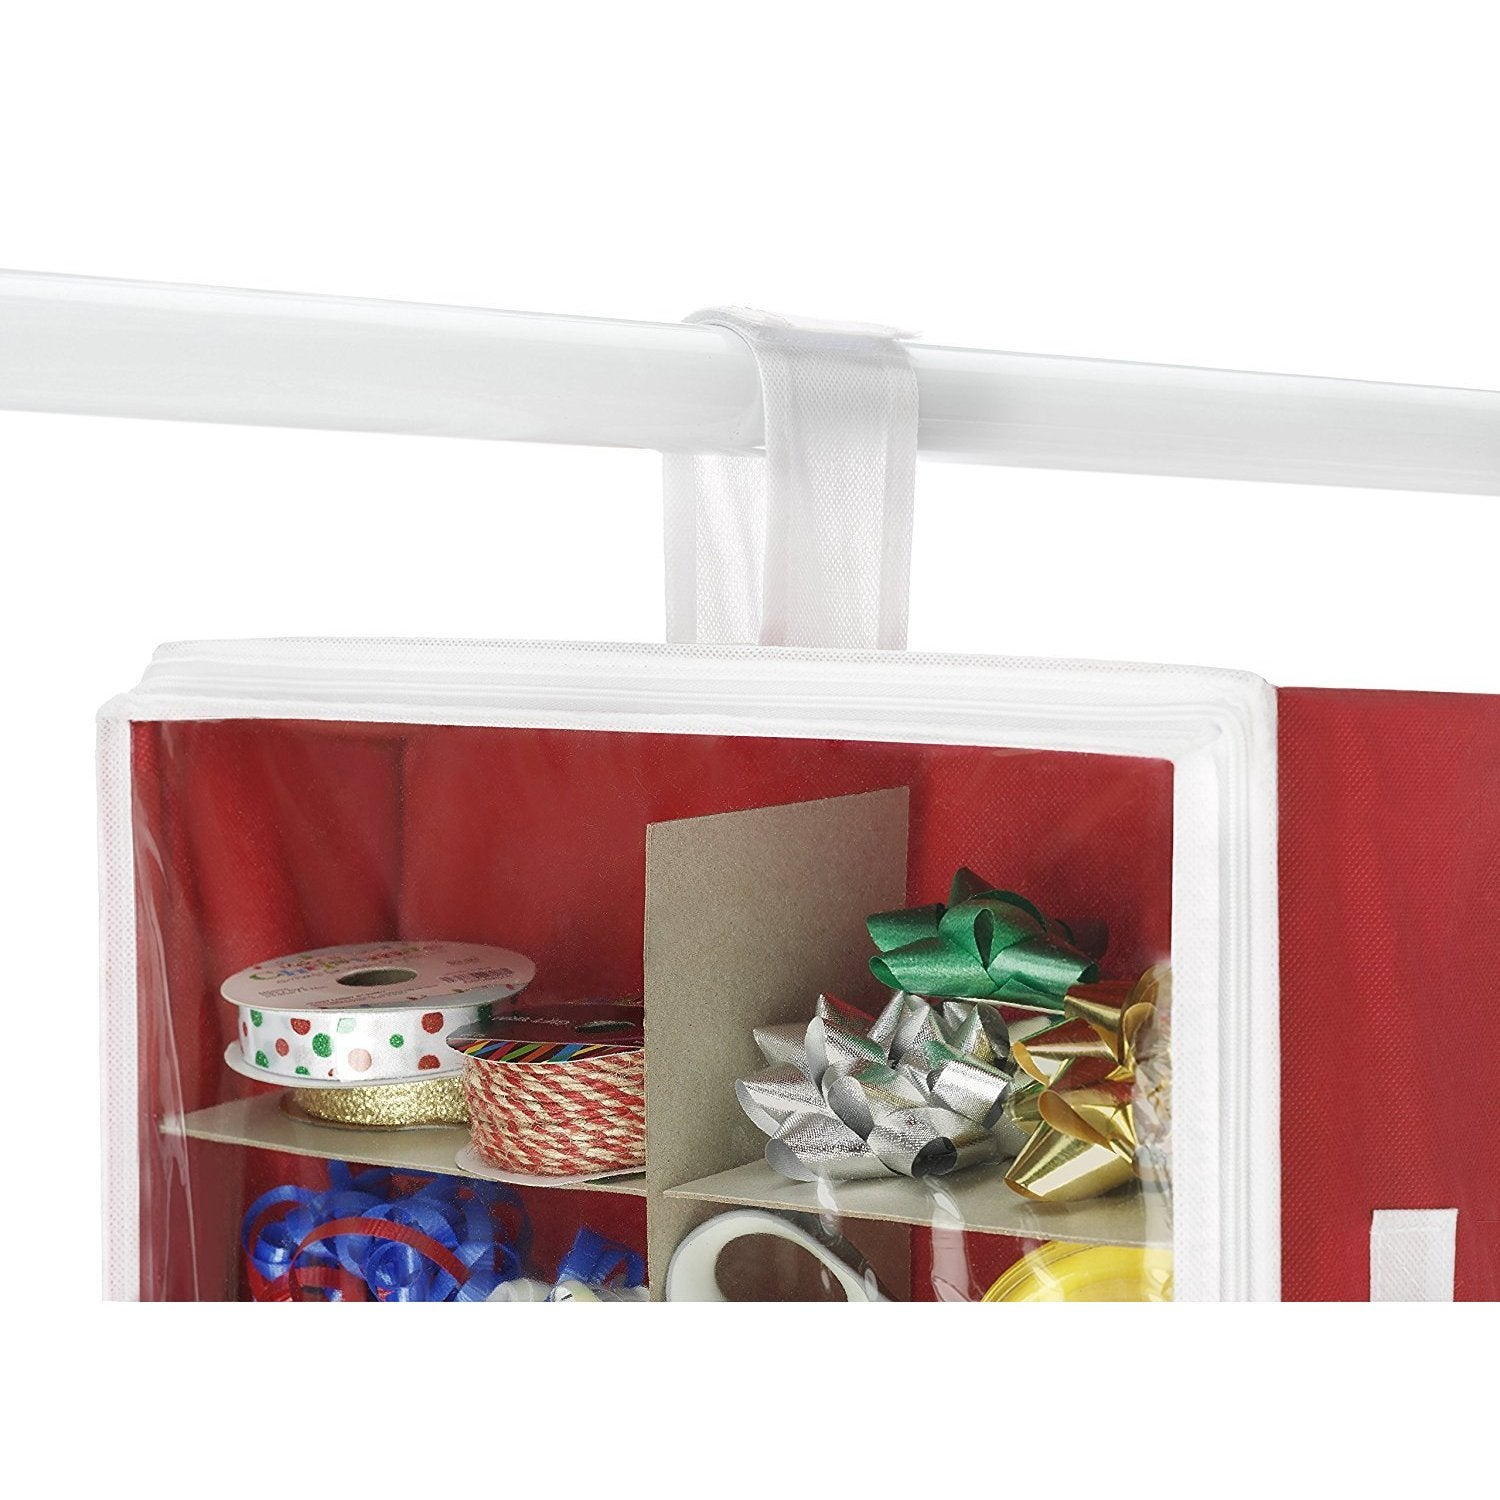 shop whitmor premium clear hanging gift wrapping paper organizer comes with handles perfect for the hol free shipping on orders over 45 overstockcom